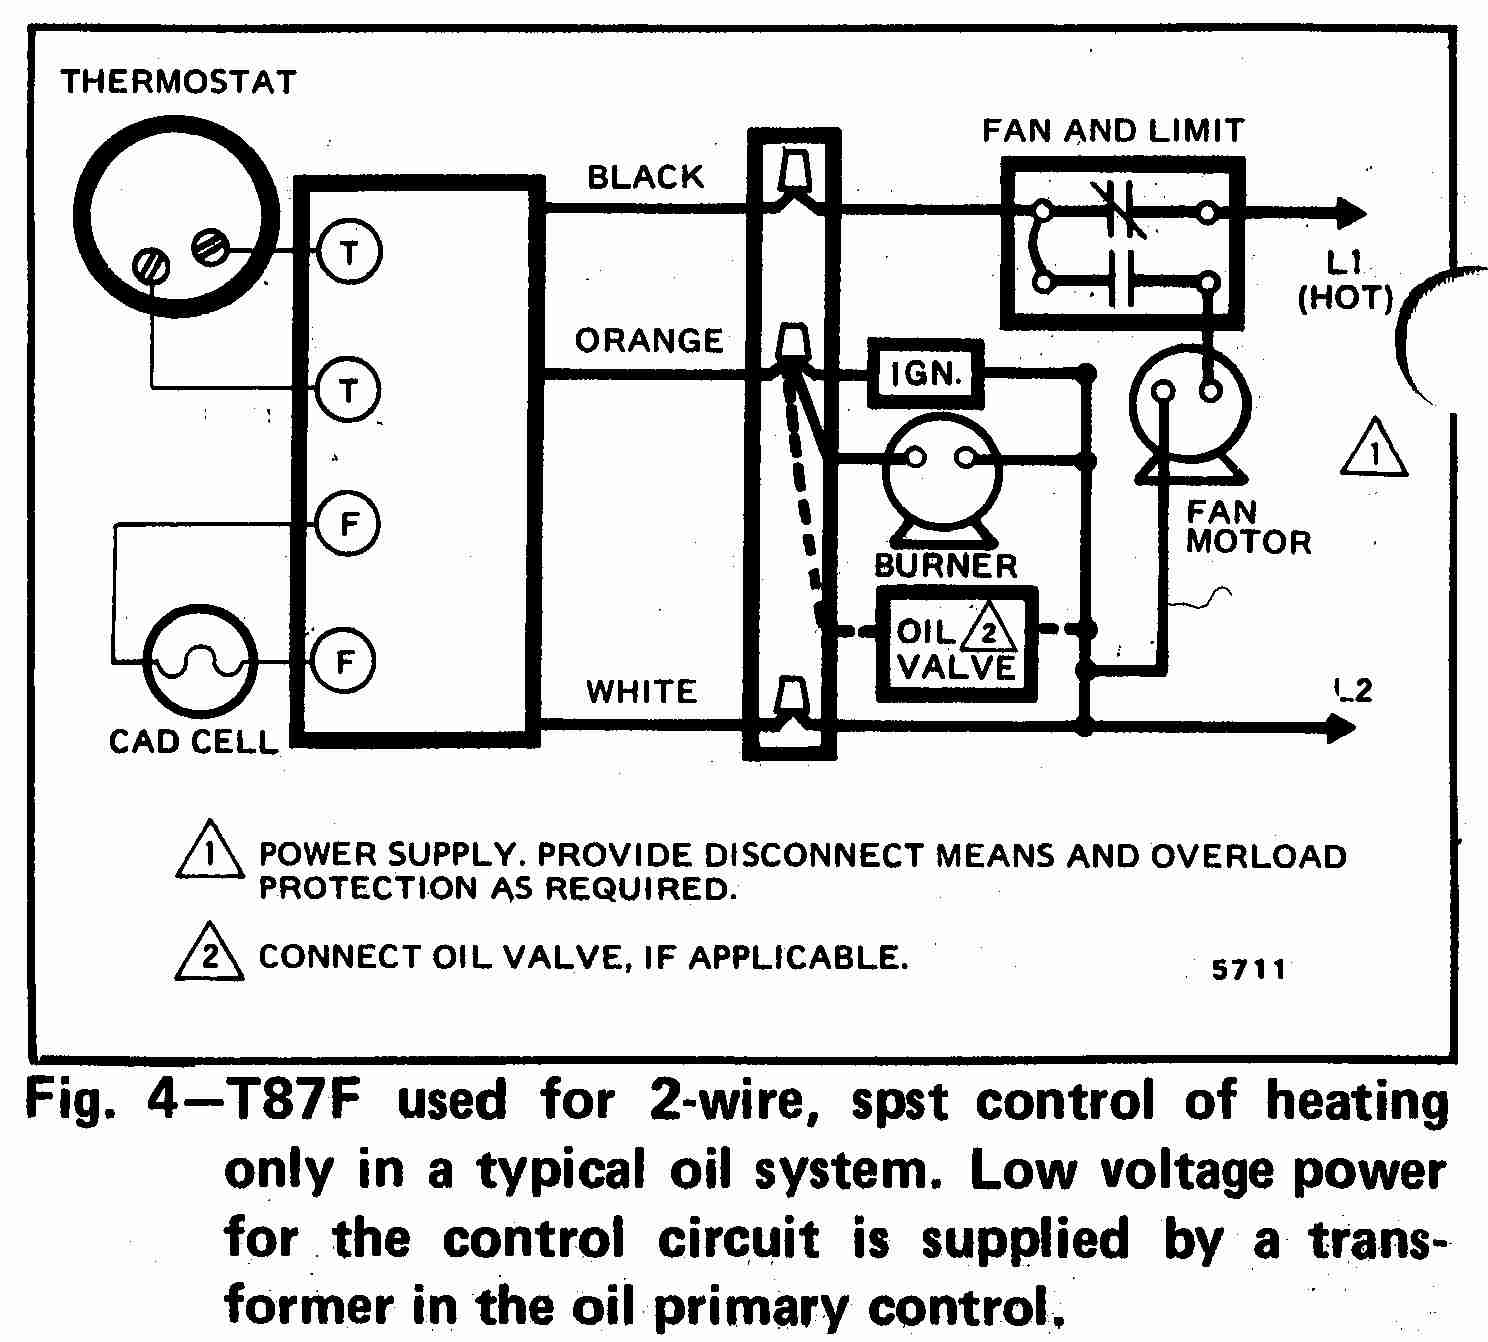 Coleman furnace wiring diagram for oil free download wiring diagram room thermostat wiring diagrams for hvac systems honeywell t87f thermostat wiring diagram for 2 wire spst control of heating only in at ge furnace wiring cheapraybanclubmaster Images